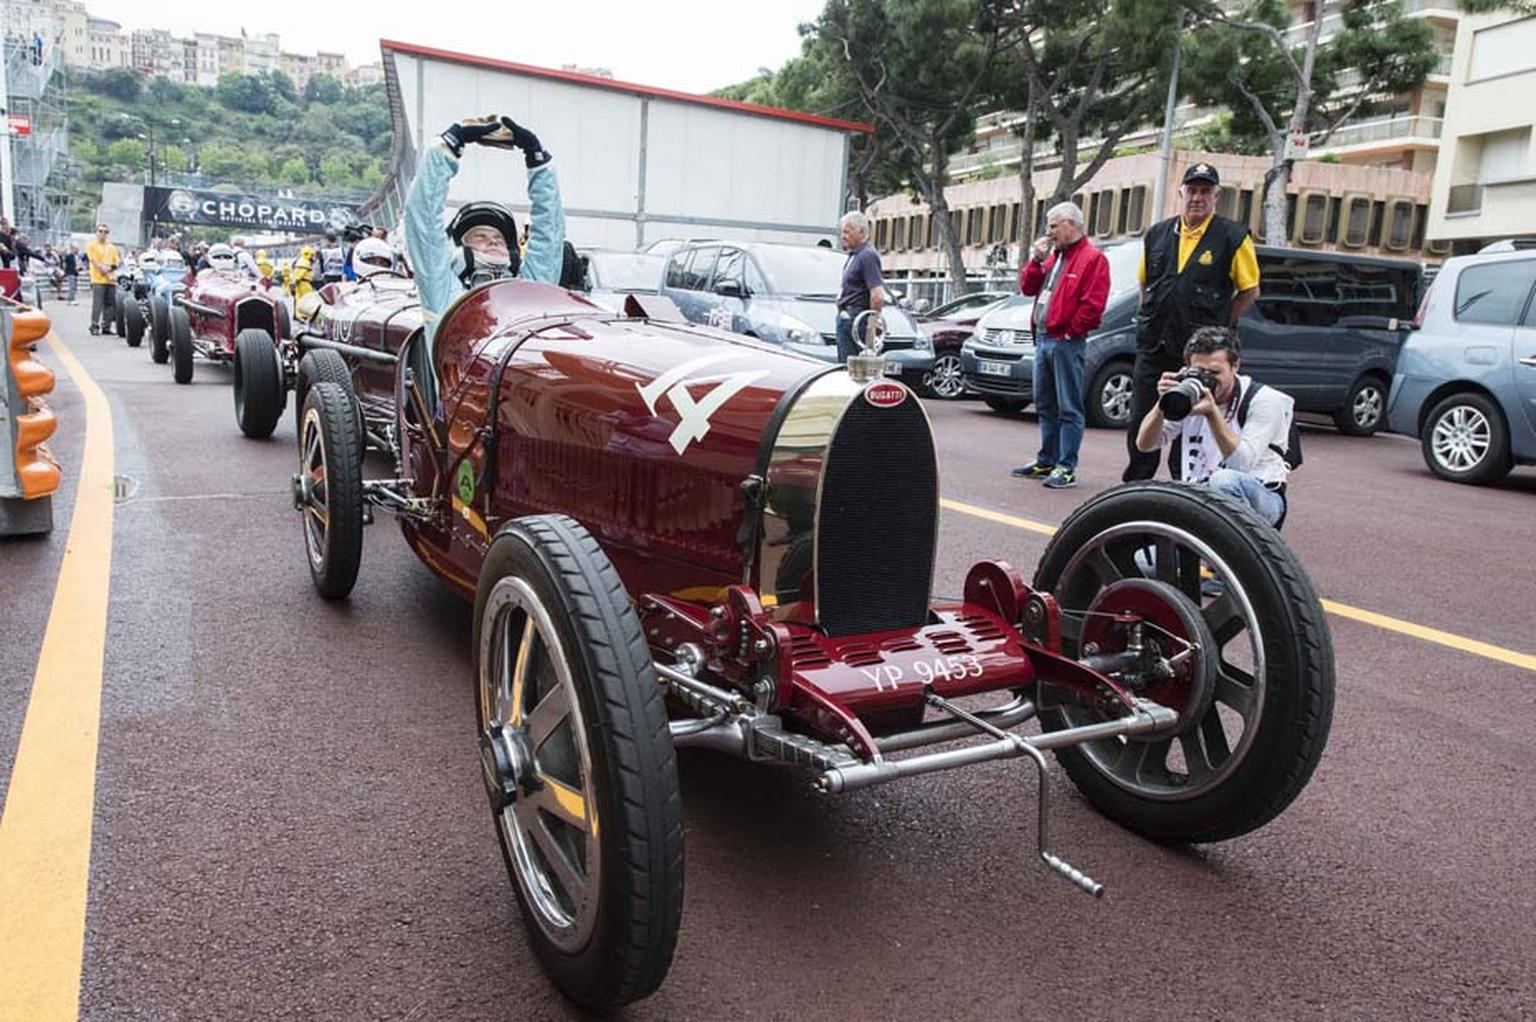 Vintage cars in starting position for the Grand Prix de Monaco Historique - the legendary race in which historical Formula I cars from the 1920s to 1985 tear around the hairpin bends of Monte Carlo.